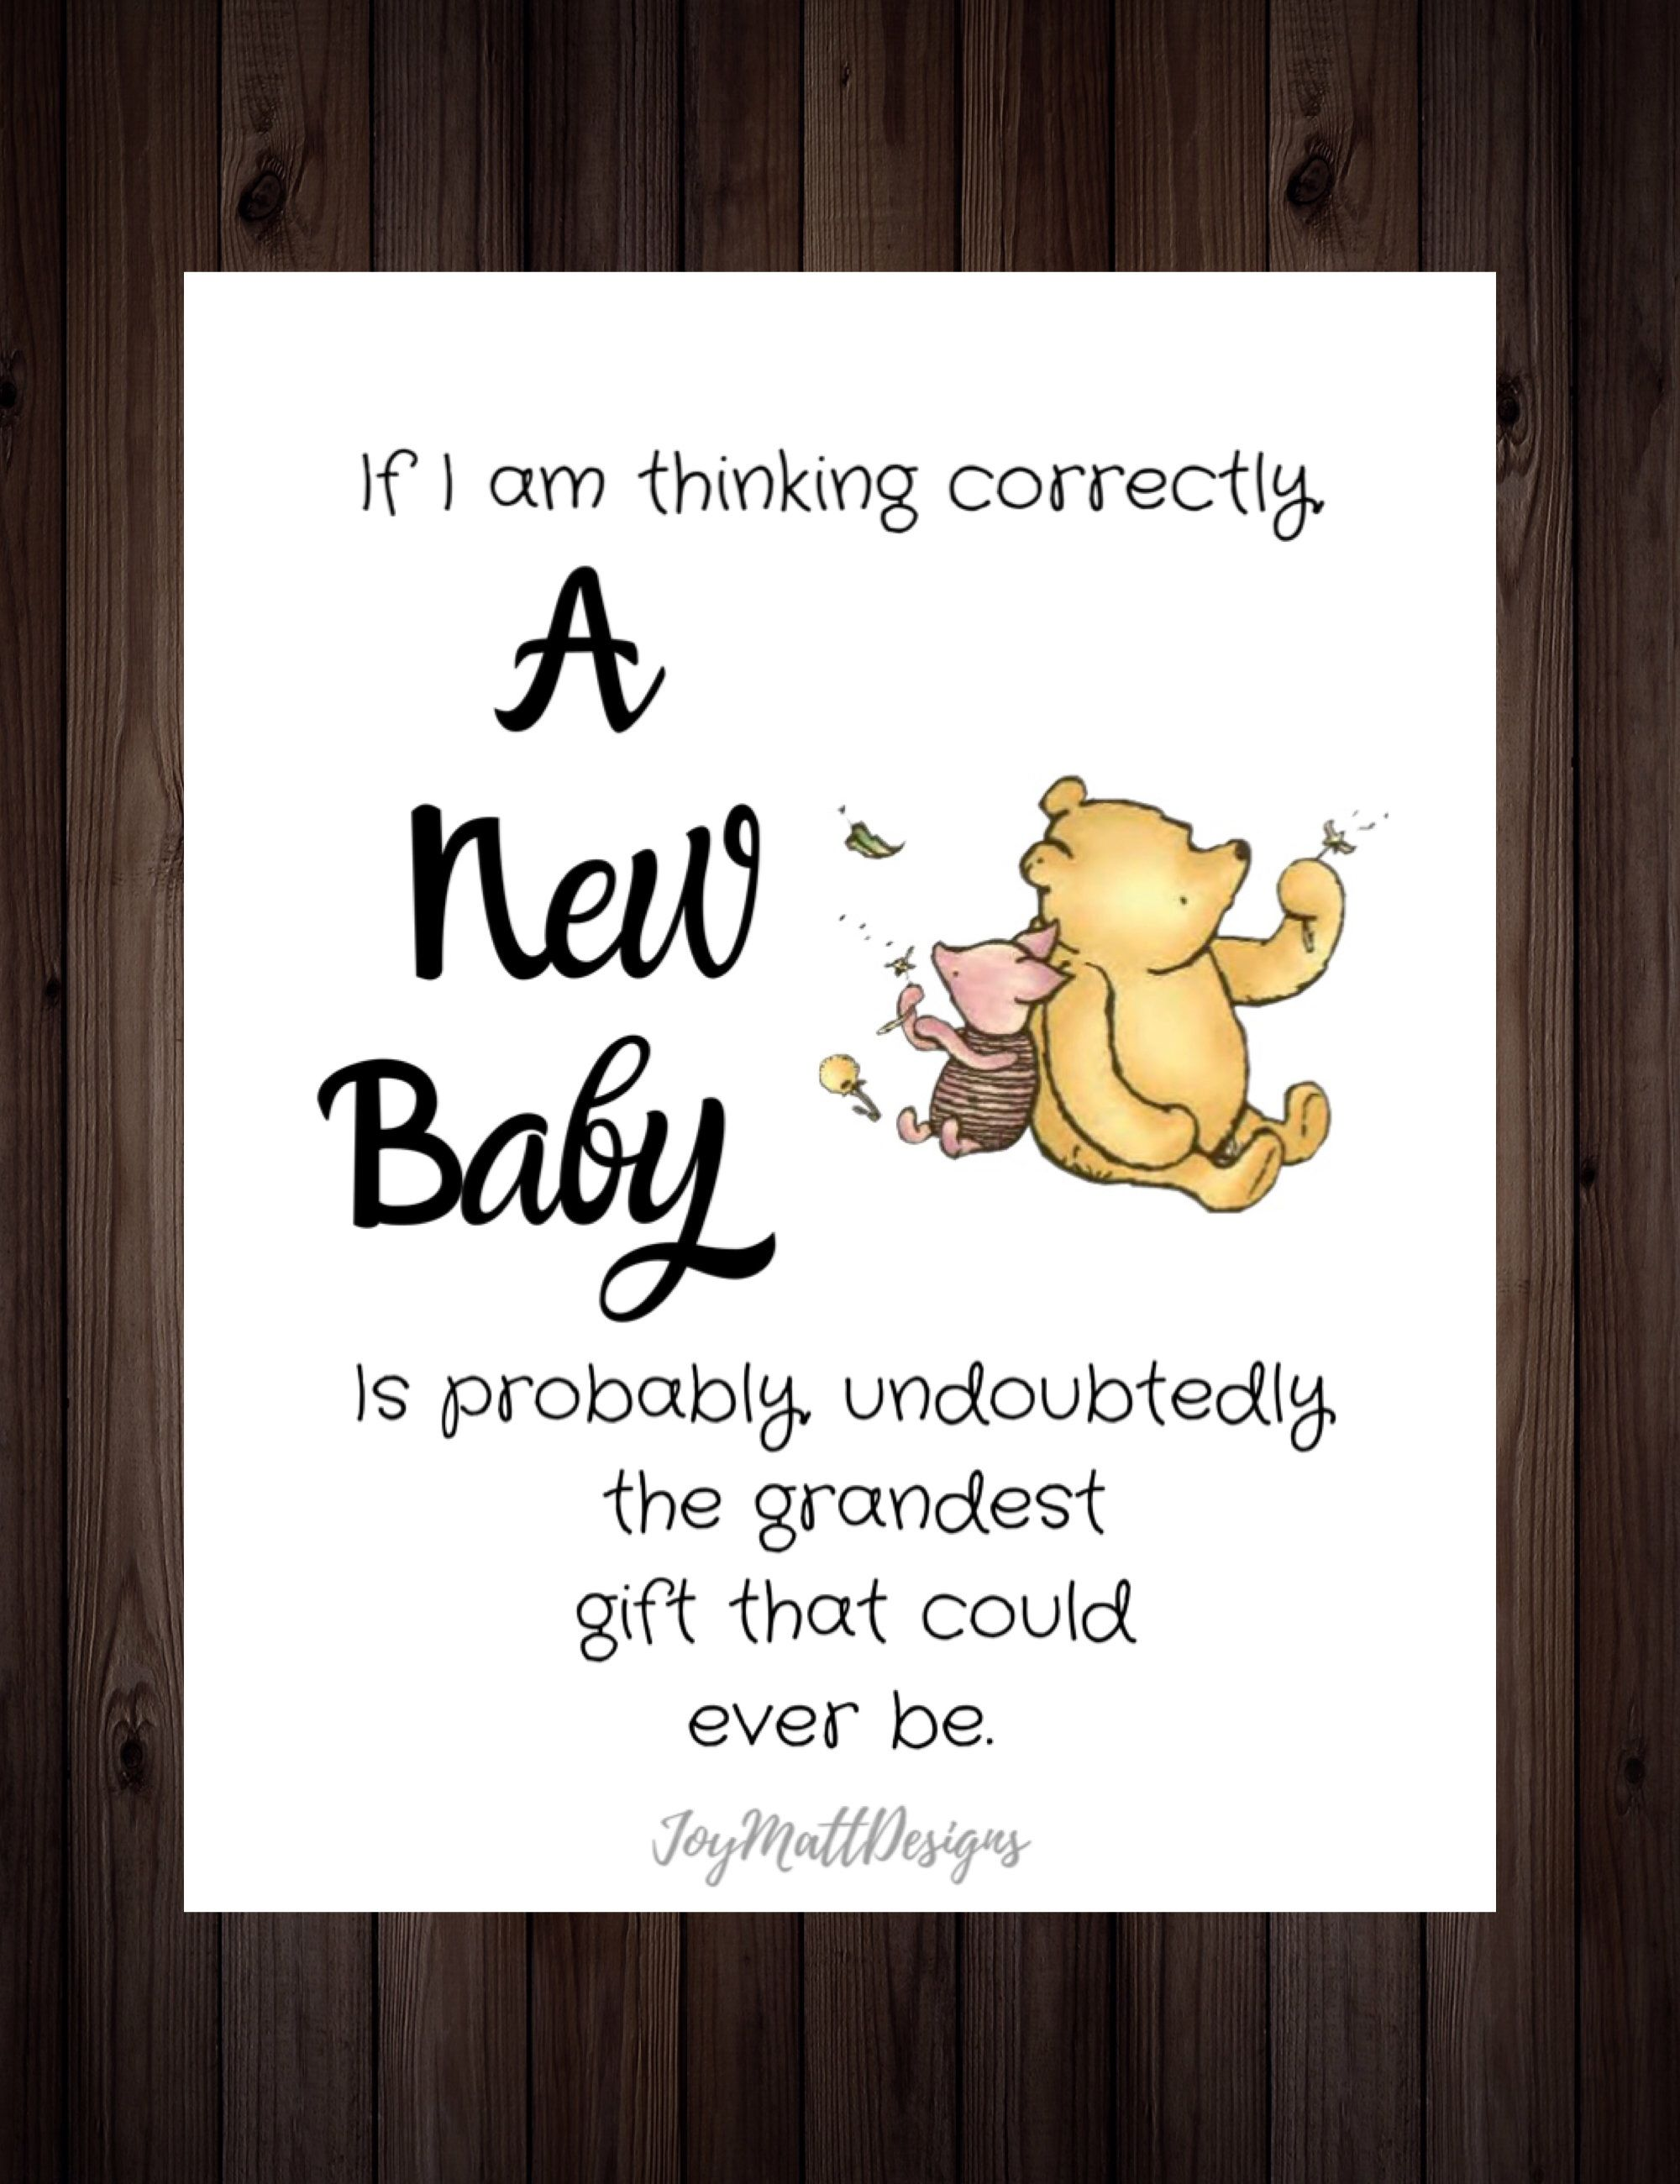 Winnie The Pooh Baby Shower Quotes : winnie, shower, quotes, Classic, Winnie, Quote, Nursery, Shower, Products,, Disney, Shower,